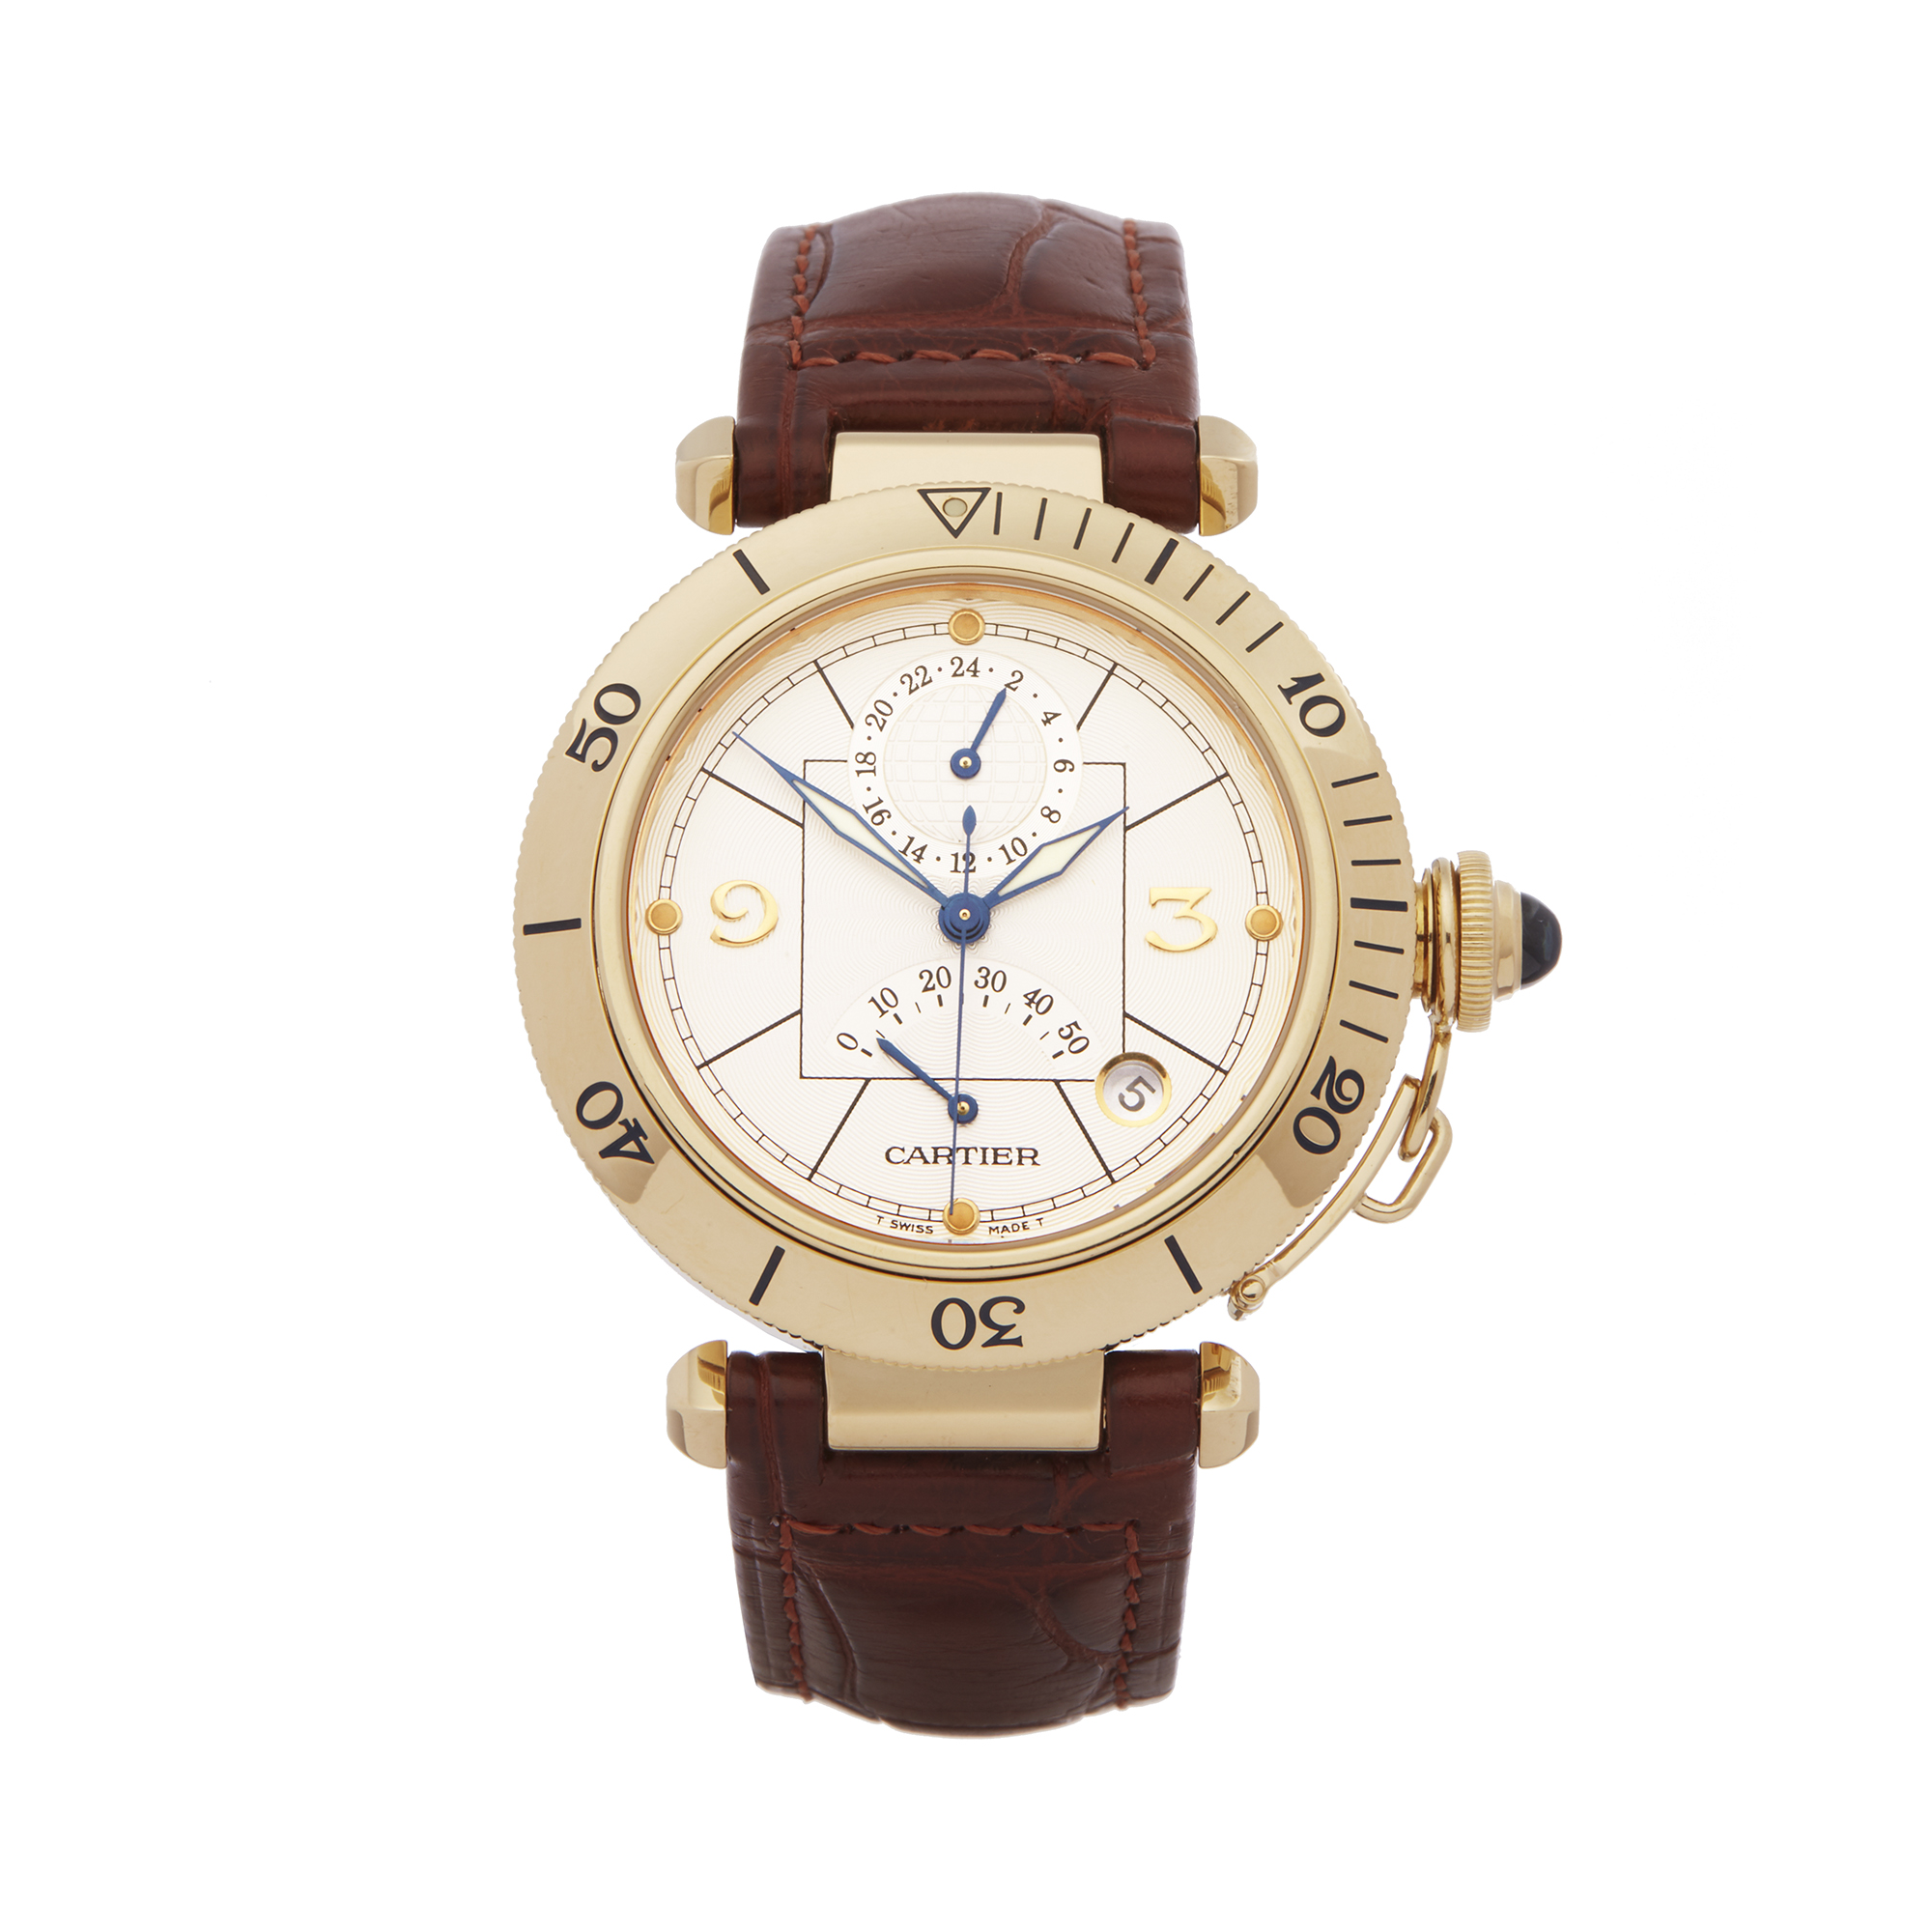 Cartier Pasha Seatimer W3014456 or 2395 Men Yellow Gold Watch - Image 9 of 9